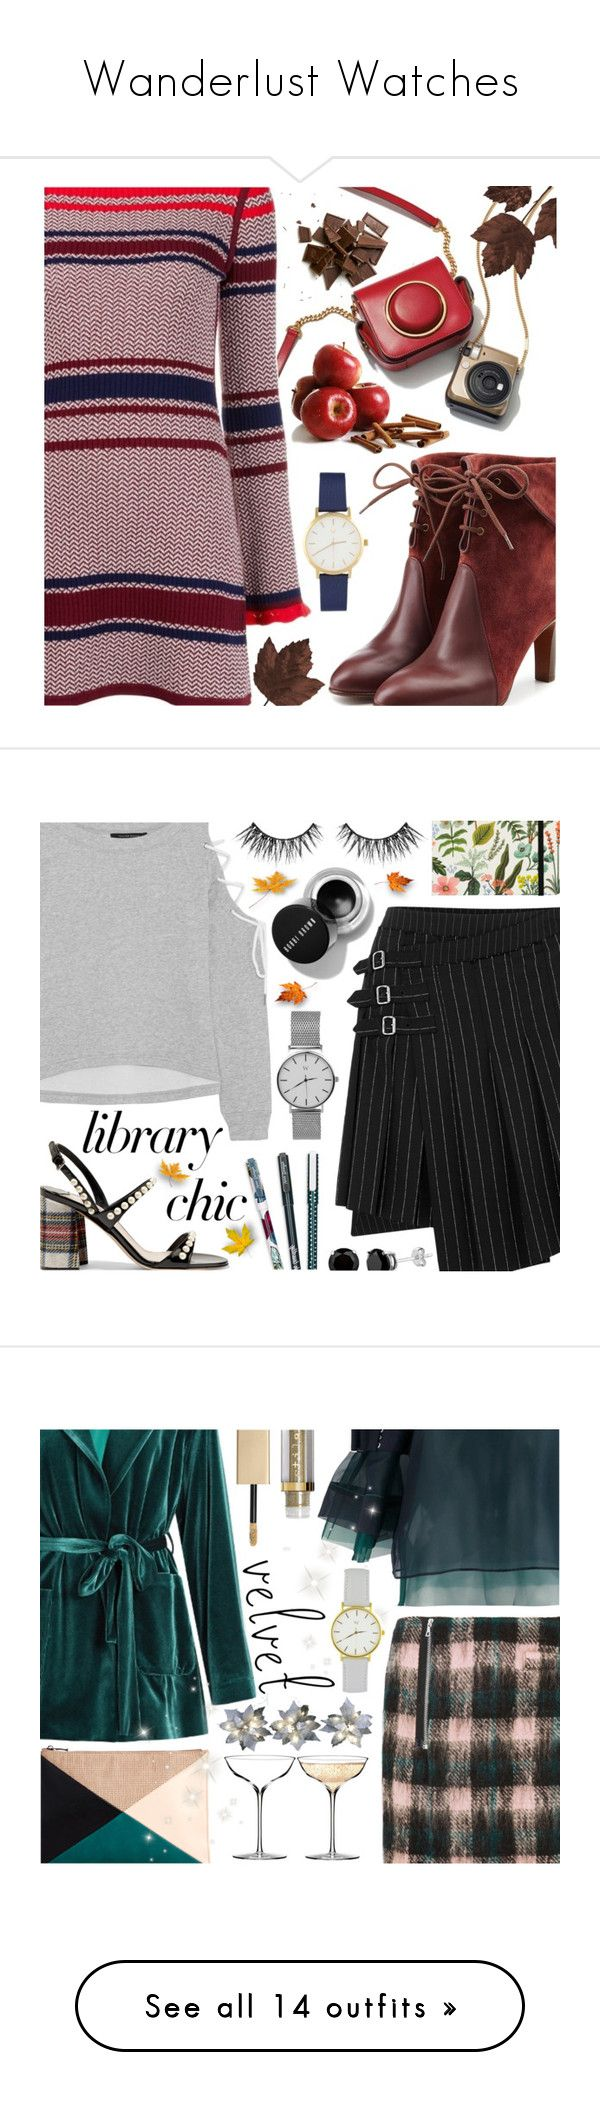 """""""Wanderlust Watches"""" by ana3blue on Polyvore featuring Misha Nonoo, Chloé, McQ by Alexander McQueen, W118 by Walter Baker, Miu Miu, Vera Bradley, Berylune, Markus Lupfer, Sacai and LUISA BECCARIA"""